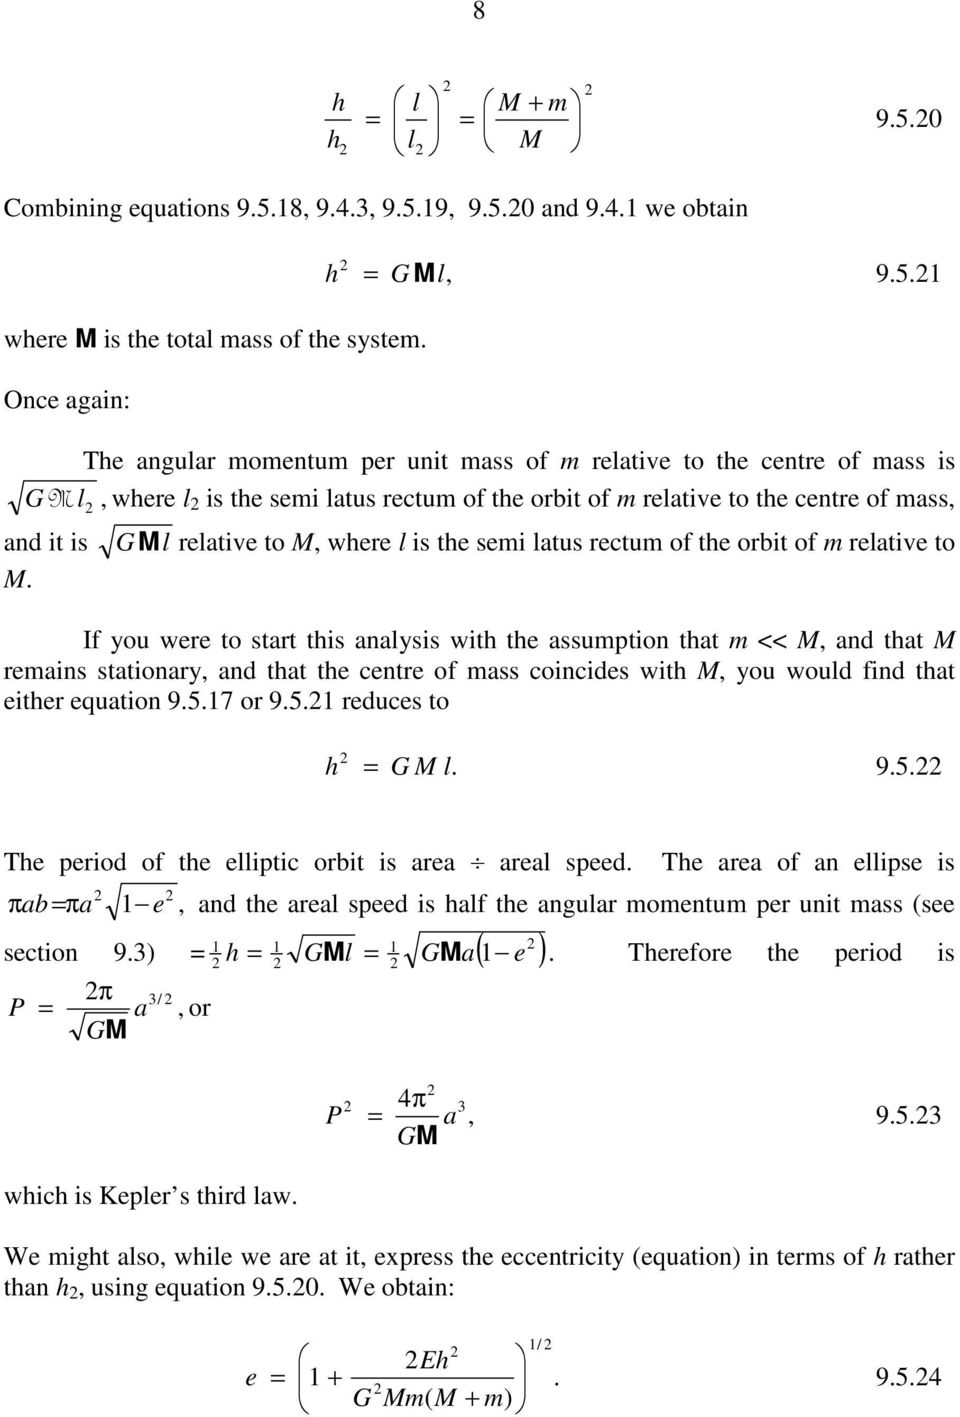 GMl elative to M, whee l is the semi latus ectum of the obit of m elative to If you wee to stat this analysis with the assumption that m << M, and that M emains stationay, and that the cente of mass